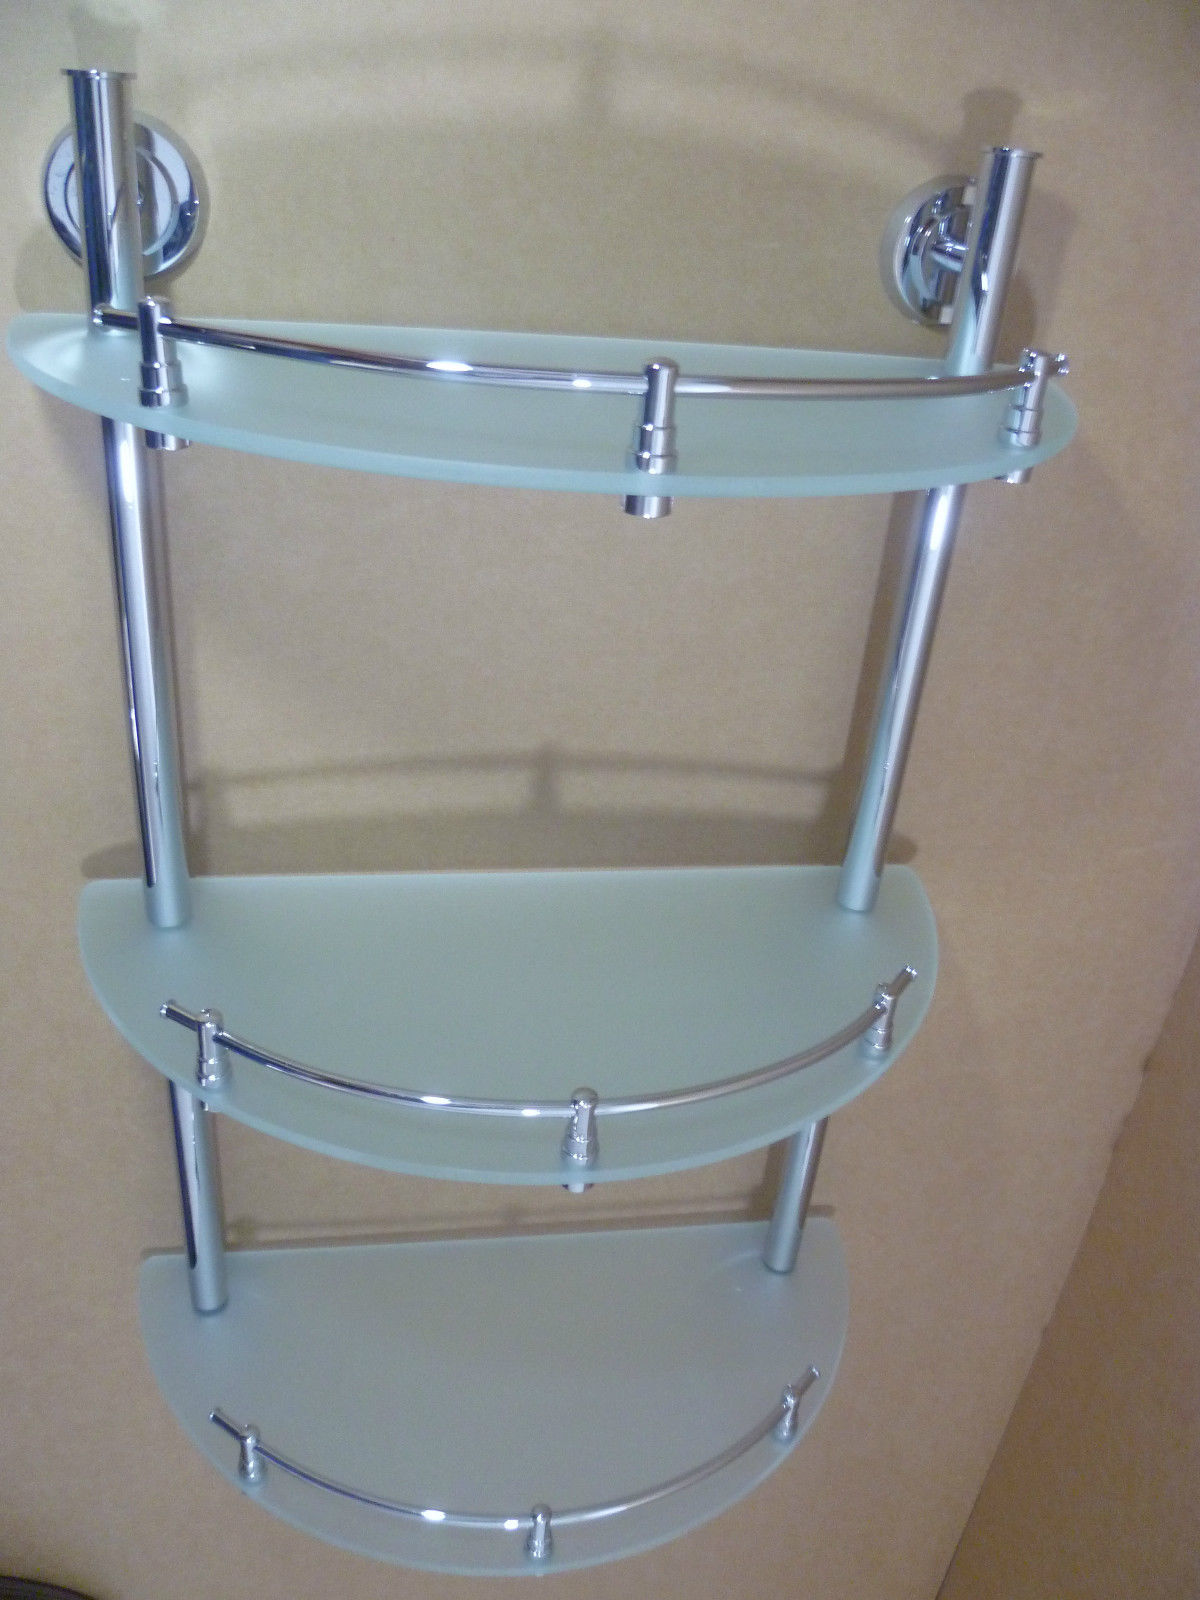 Shelving units for bathrooms - Instead Of Buying A Big Shelving Unit You Can Buy Several Glass Shelves For Bathroom Glass Shelves Have Stylish Design